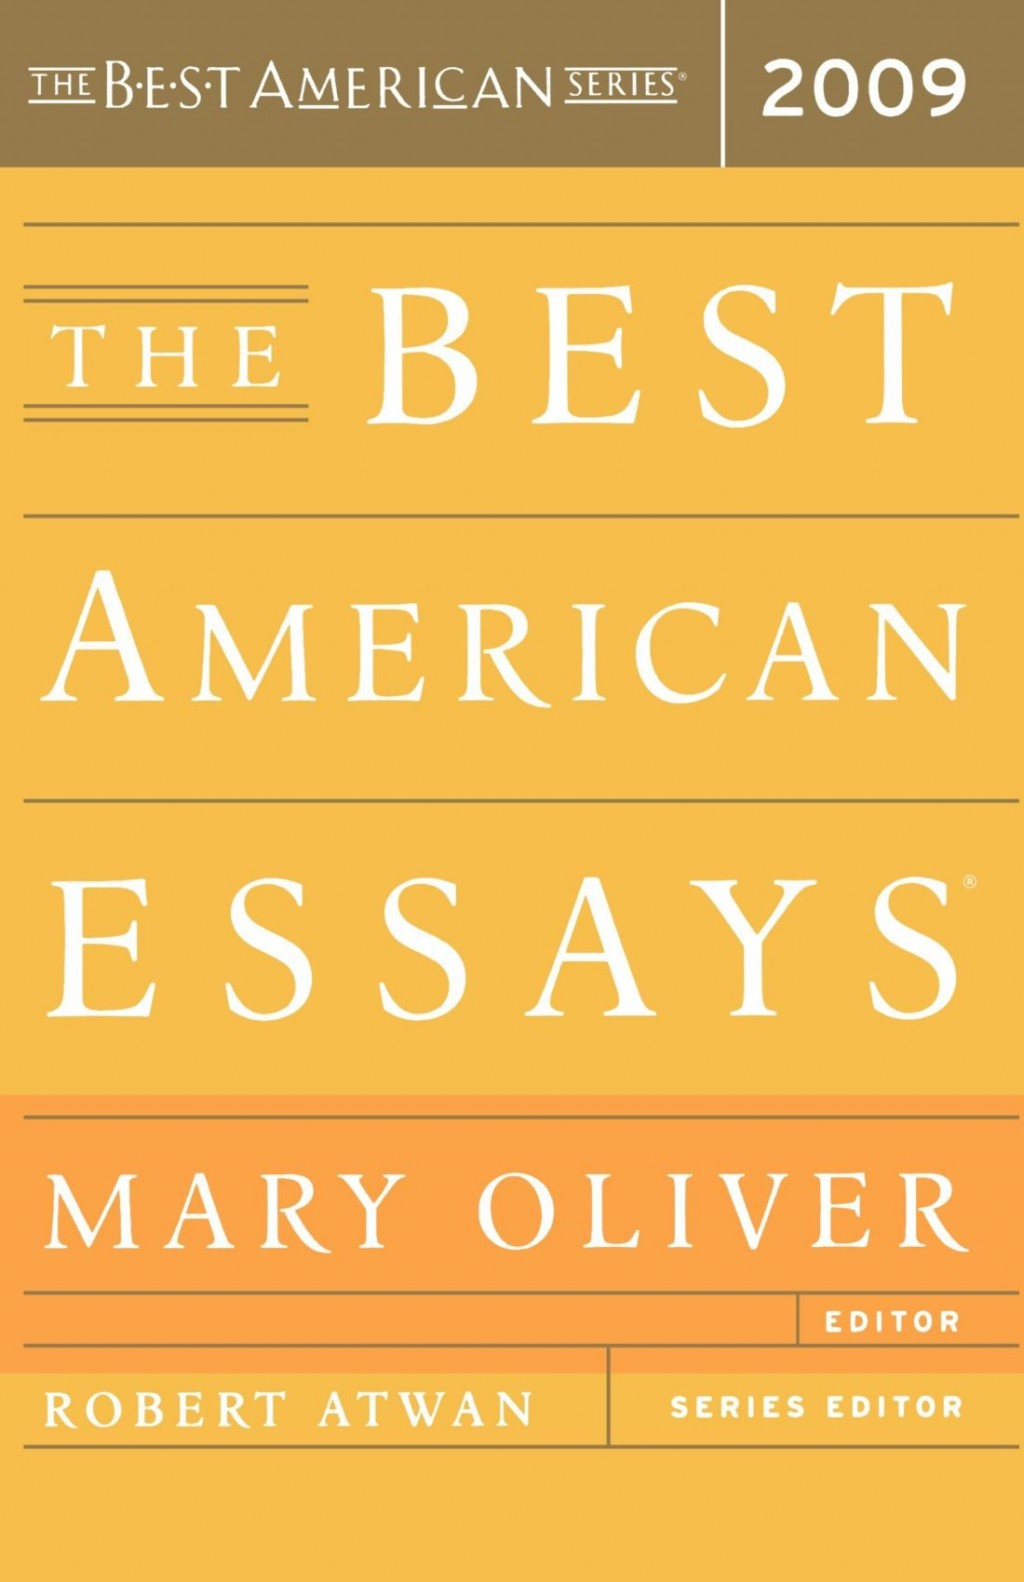 008 617qb5slhfl Essay Example The Best American Wonderful Essays 2018 Pdf 2017 Table Of Contents 2015 Free Large